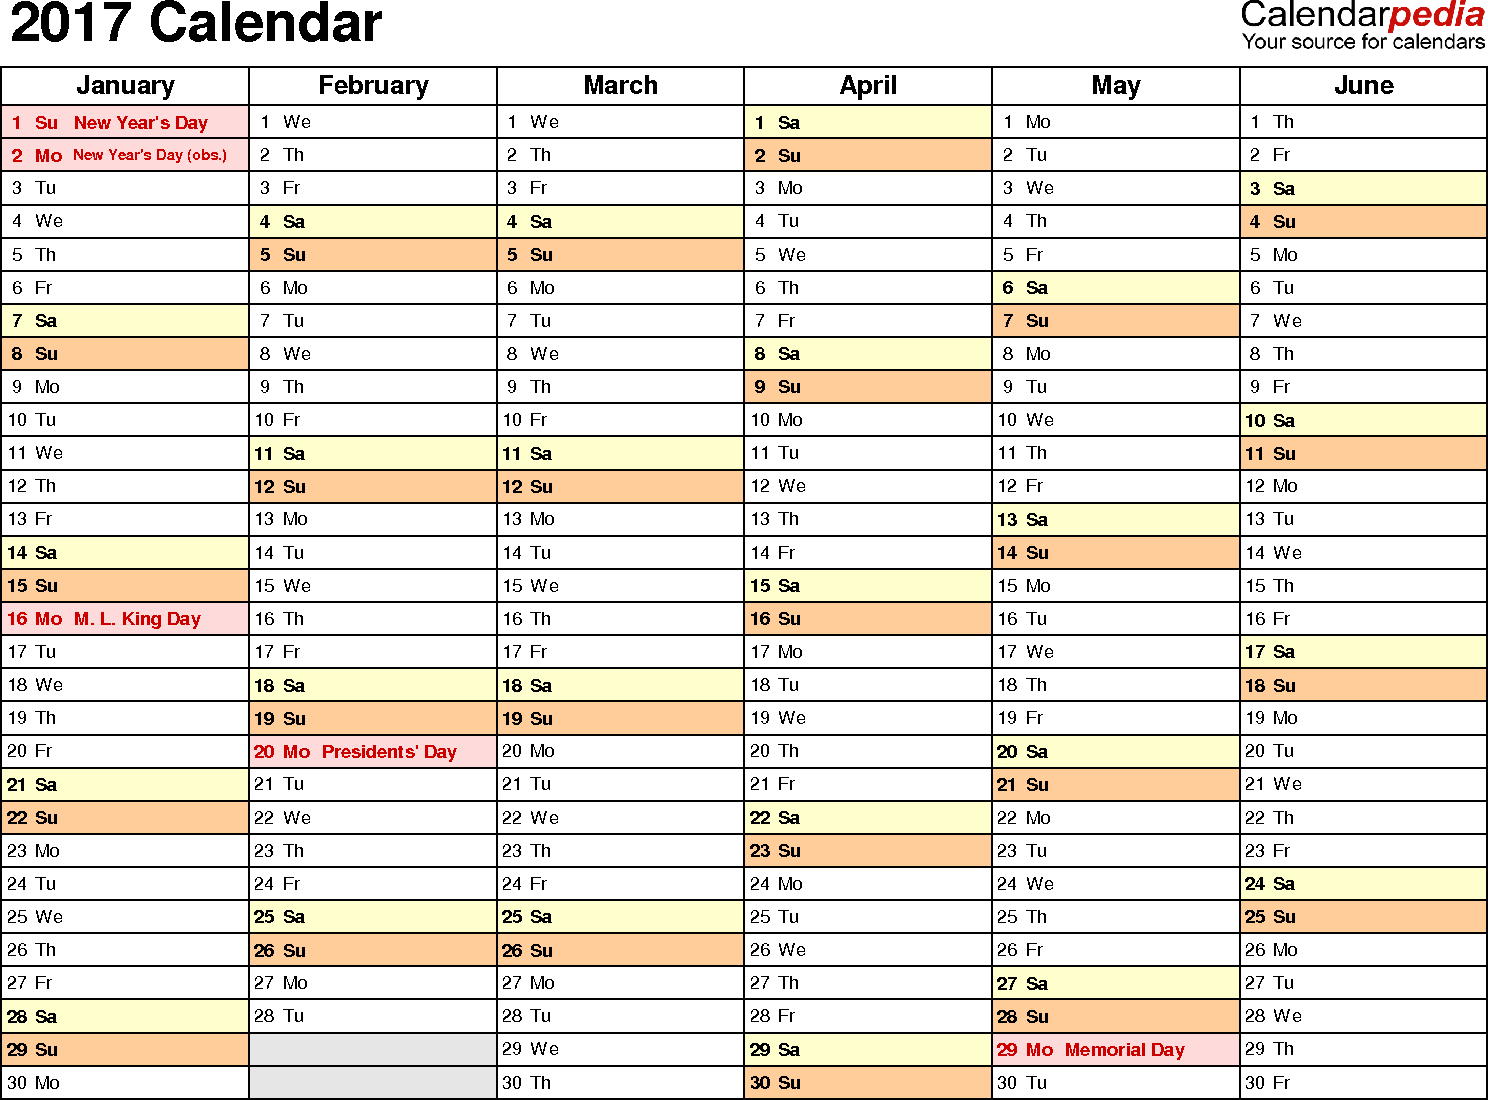 Ediblewildsus  Stunning  Calendar  Download  Free Printable Excel Templates Xls With Hot Template   Calendar For Excel Months Horizontally  Pages Landscape Orientation With Alluring Vba Code To Search Data In Excel Also Excel Interest Calculator In Addition Vba Excel Activate And Construction Punch List Template Excel As Well As Combine Excel Sheets Into One Additionally Python In Excel From Calendarpediacom With Ediblewildsus  Hot  Calendar  Download  Free Printable Excel Templates Xls With Alluring Template   Calendar For Excel Months Horizontally  Pages Landscape Orientation And Stunning Vba Code To Search Data In Excel Also Excel Interest Calculator In Addition Vba Excel Activate From Calendarpediacom